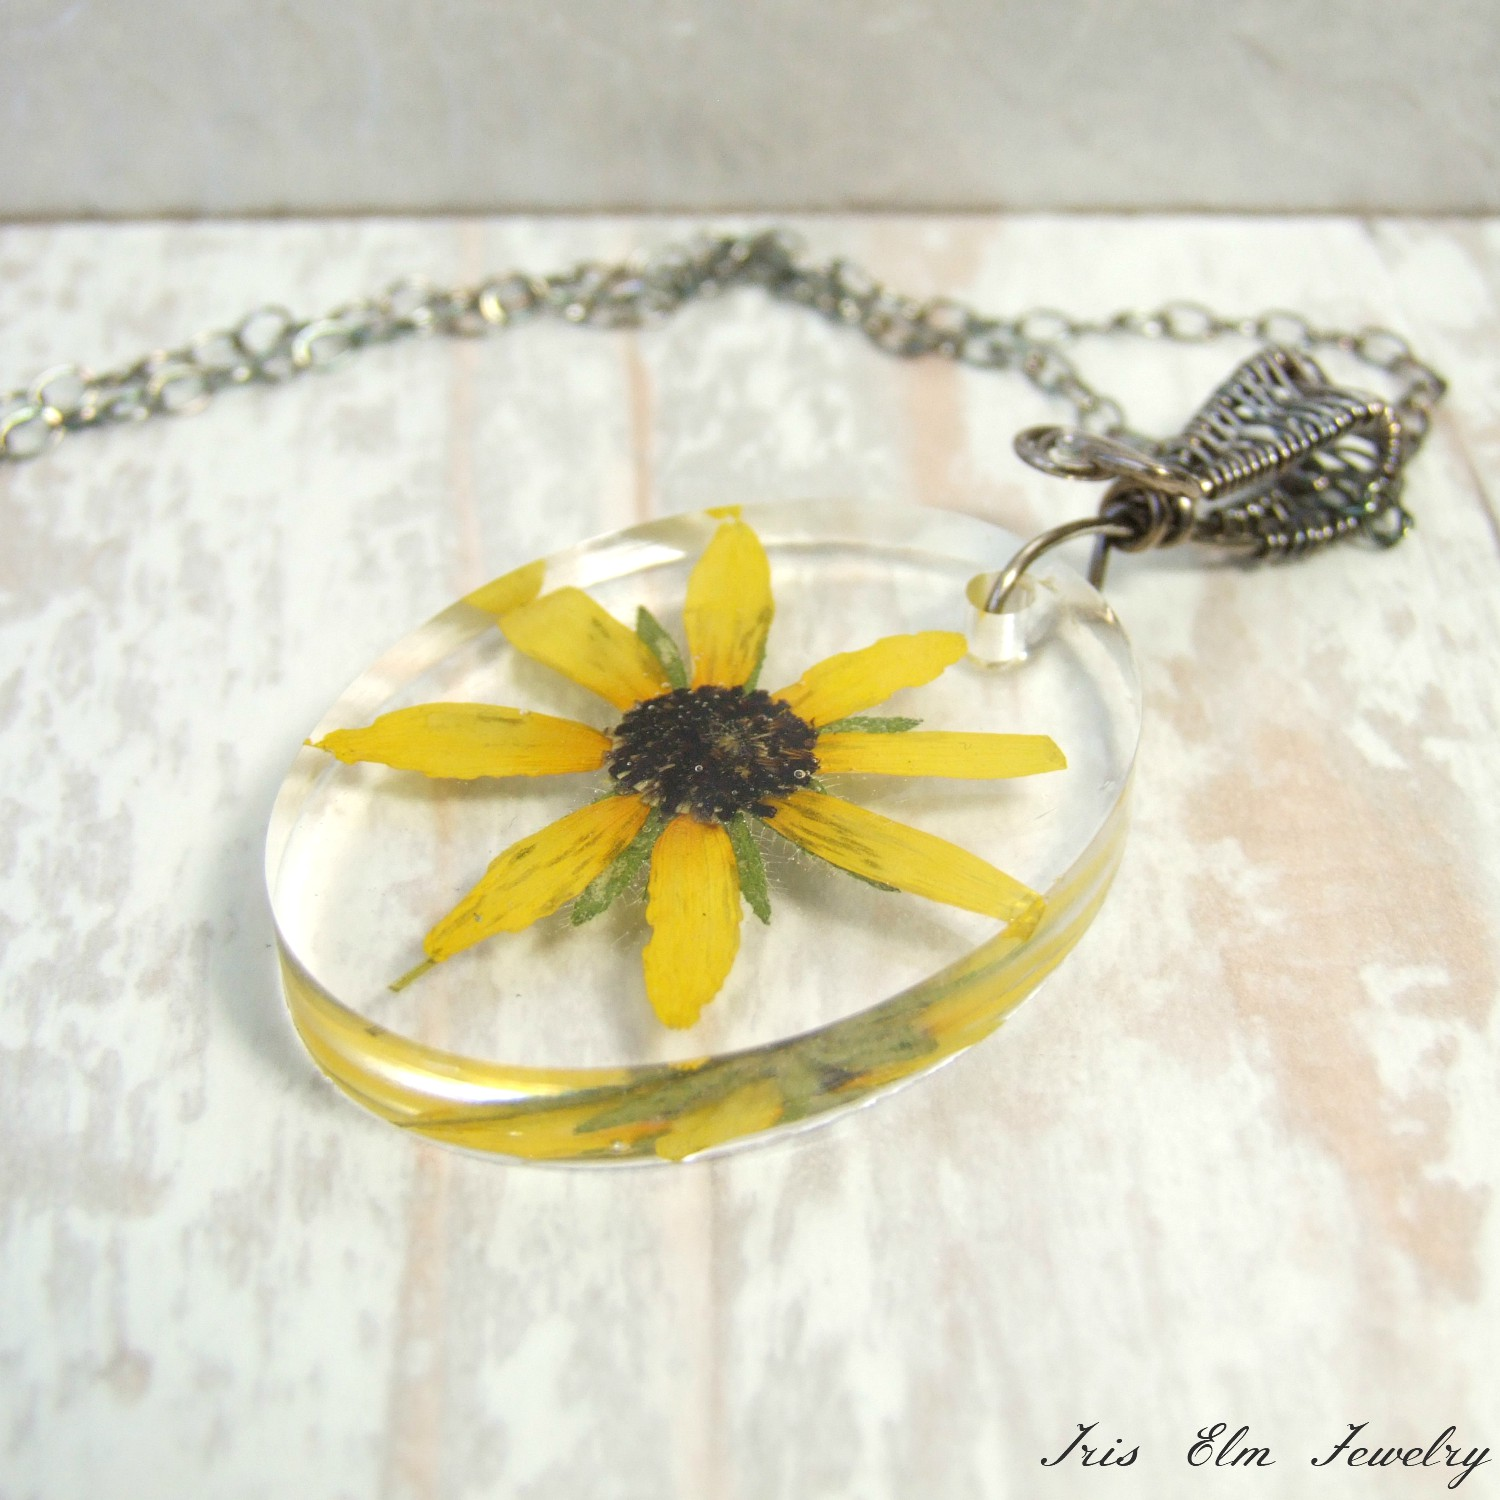 Oxidized Silver Black-Eyed Susan Sunflower Pendant Necklace